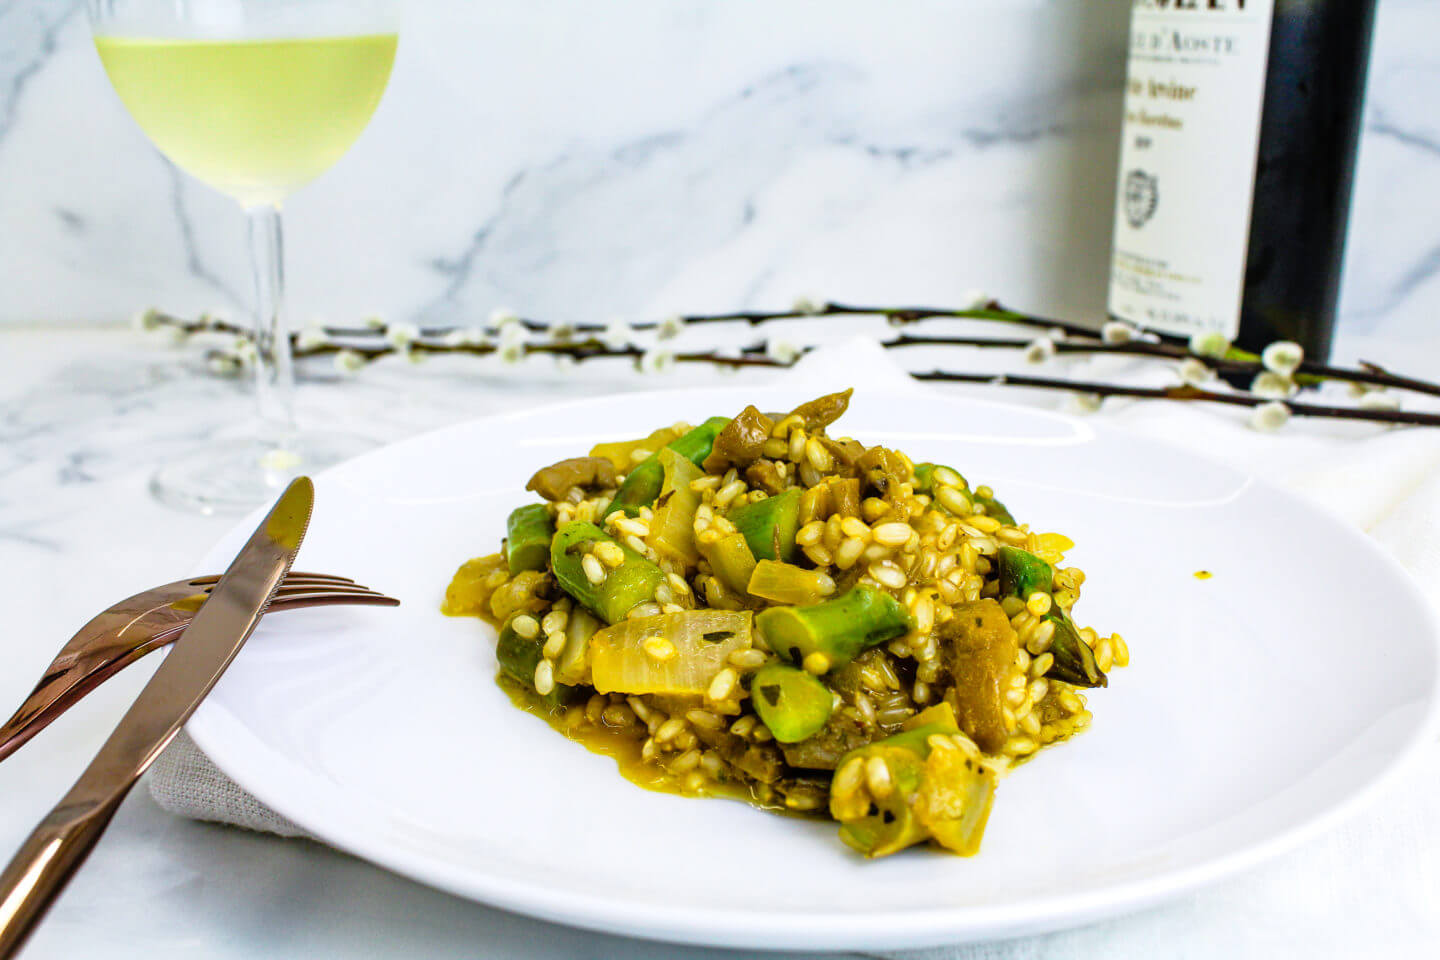 Sustainable and Plant-based Lifestyle influencer shares her delicious Truffle Asparagus Mushroom Risotto recipe!